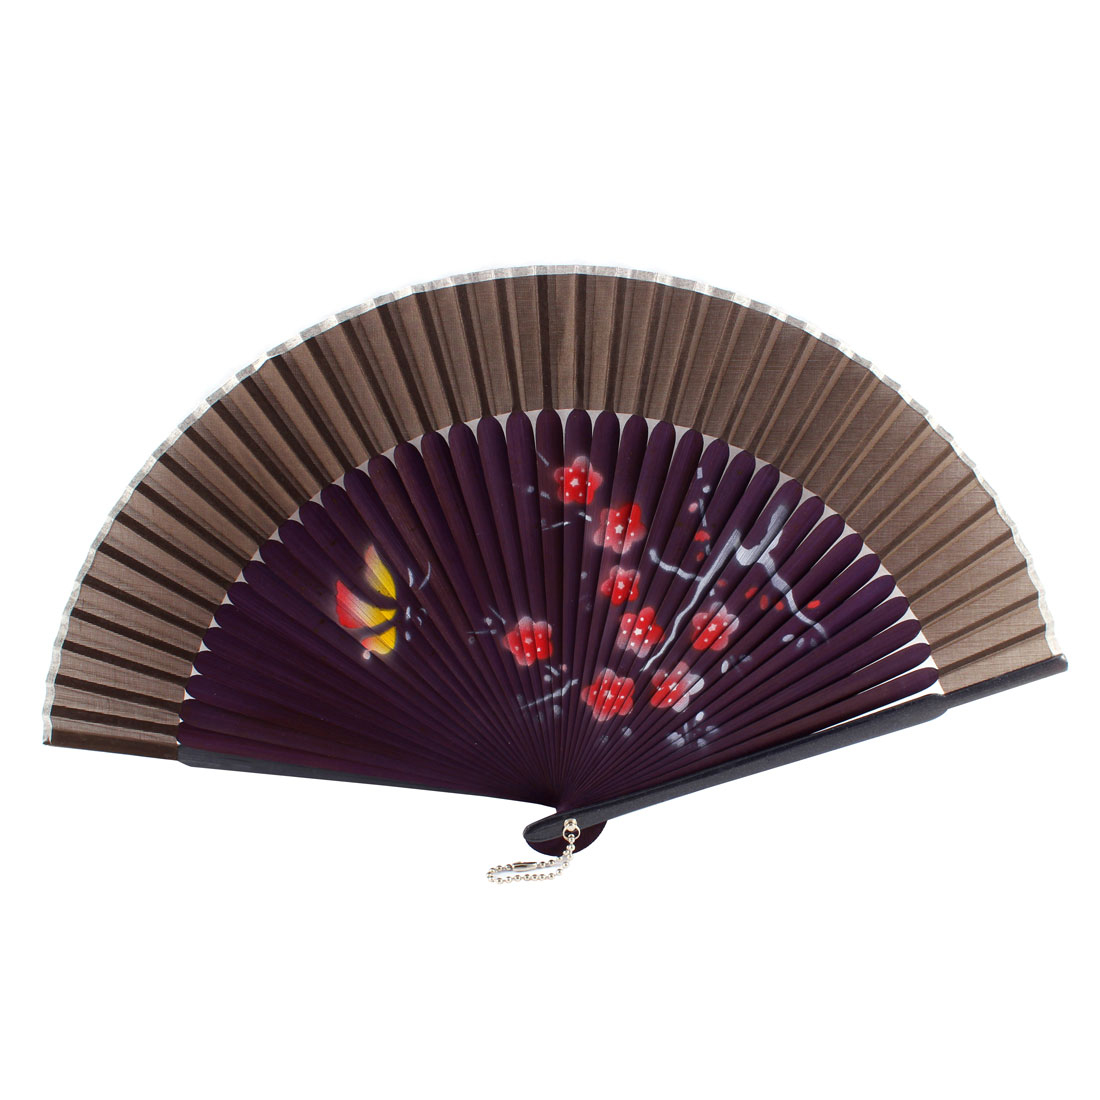 Dancer Summer Wedding Party Plum Blossom Printed Nylon Bamboo Rib Folding Hand Fan Gift Ornament Purple Coffee Color